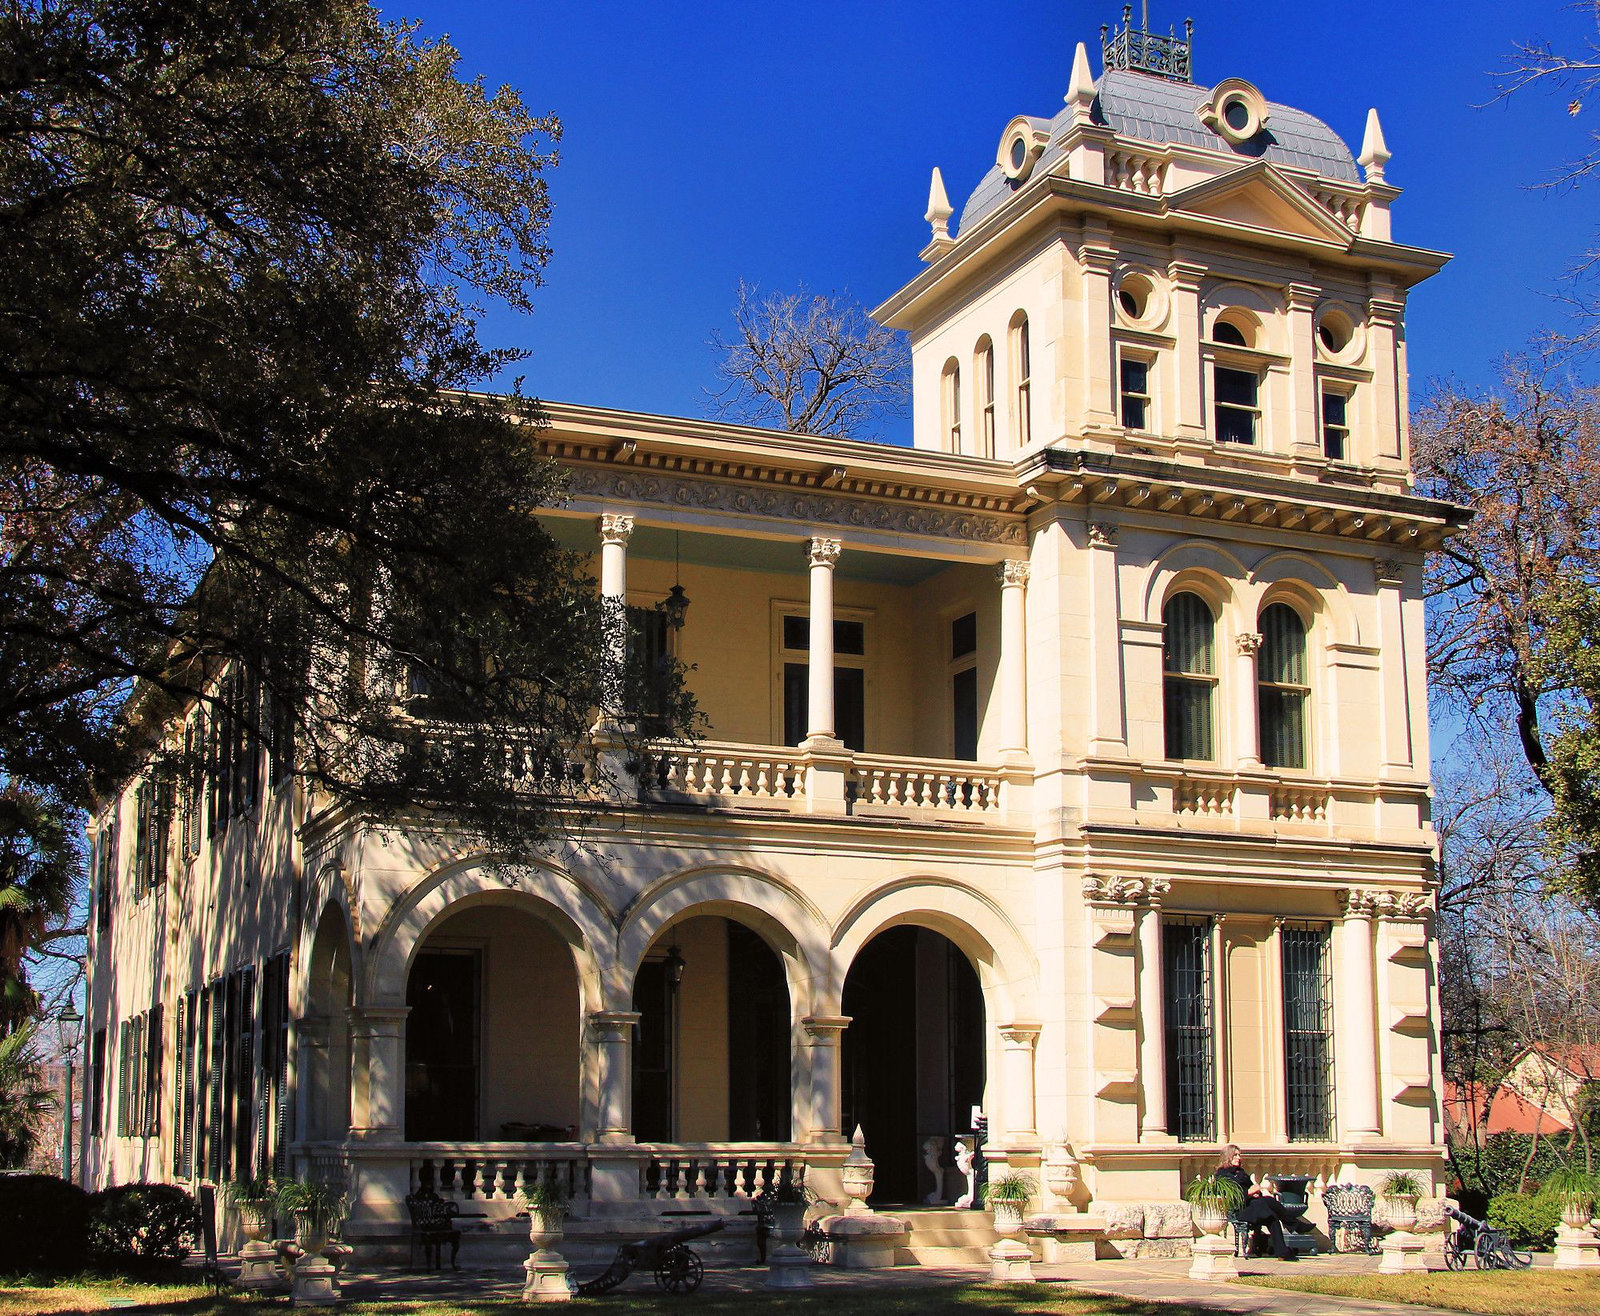 Norton-Polk-Mathis House, San Antonio, Texas. Credit Larry D. Moore